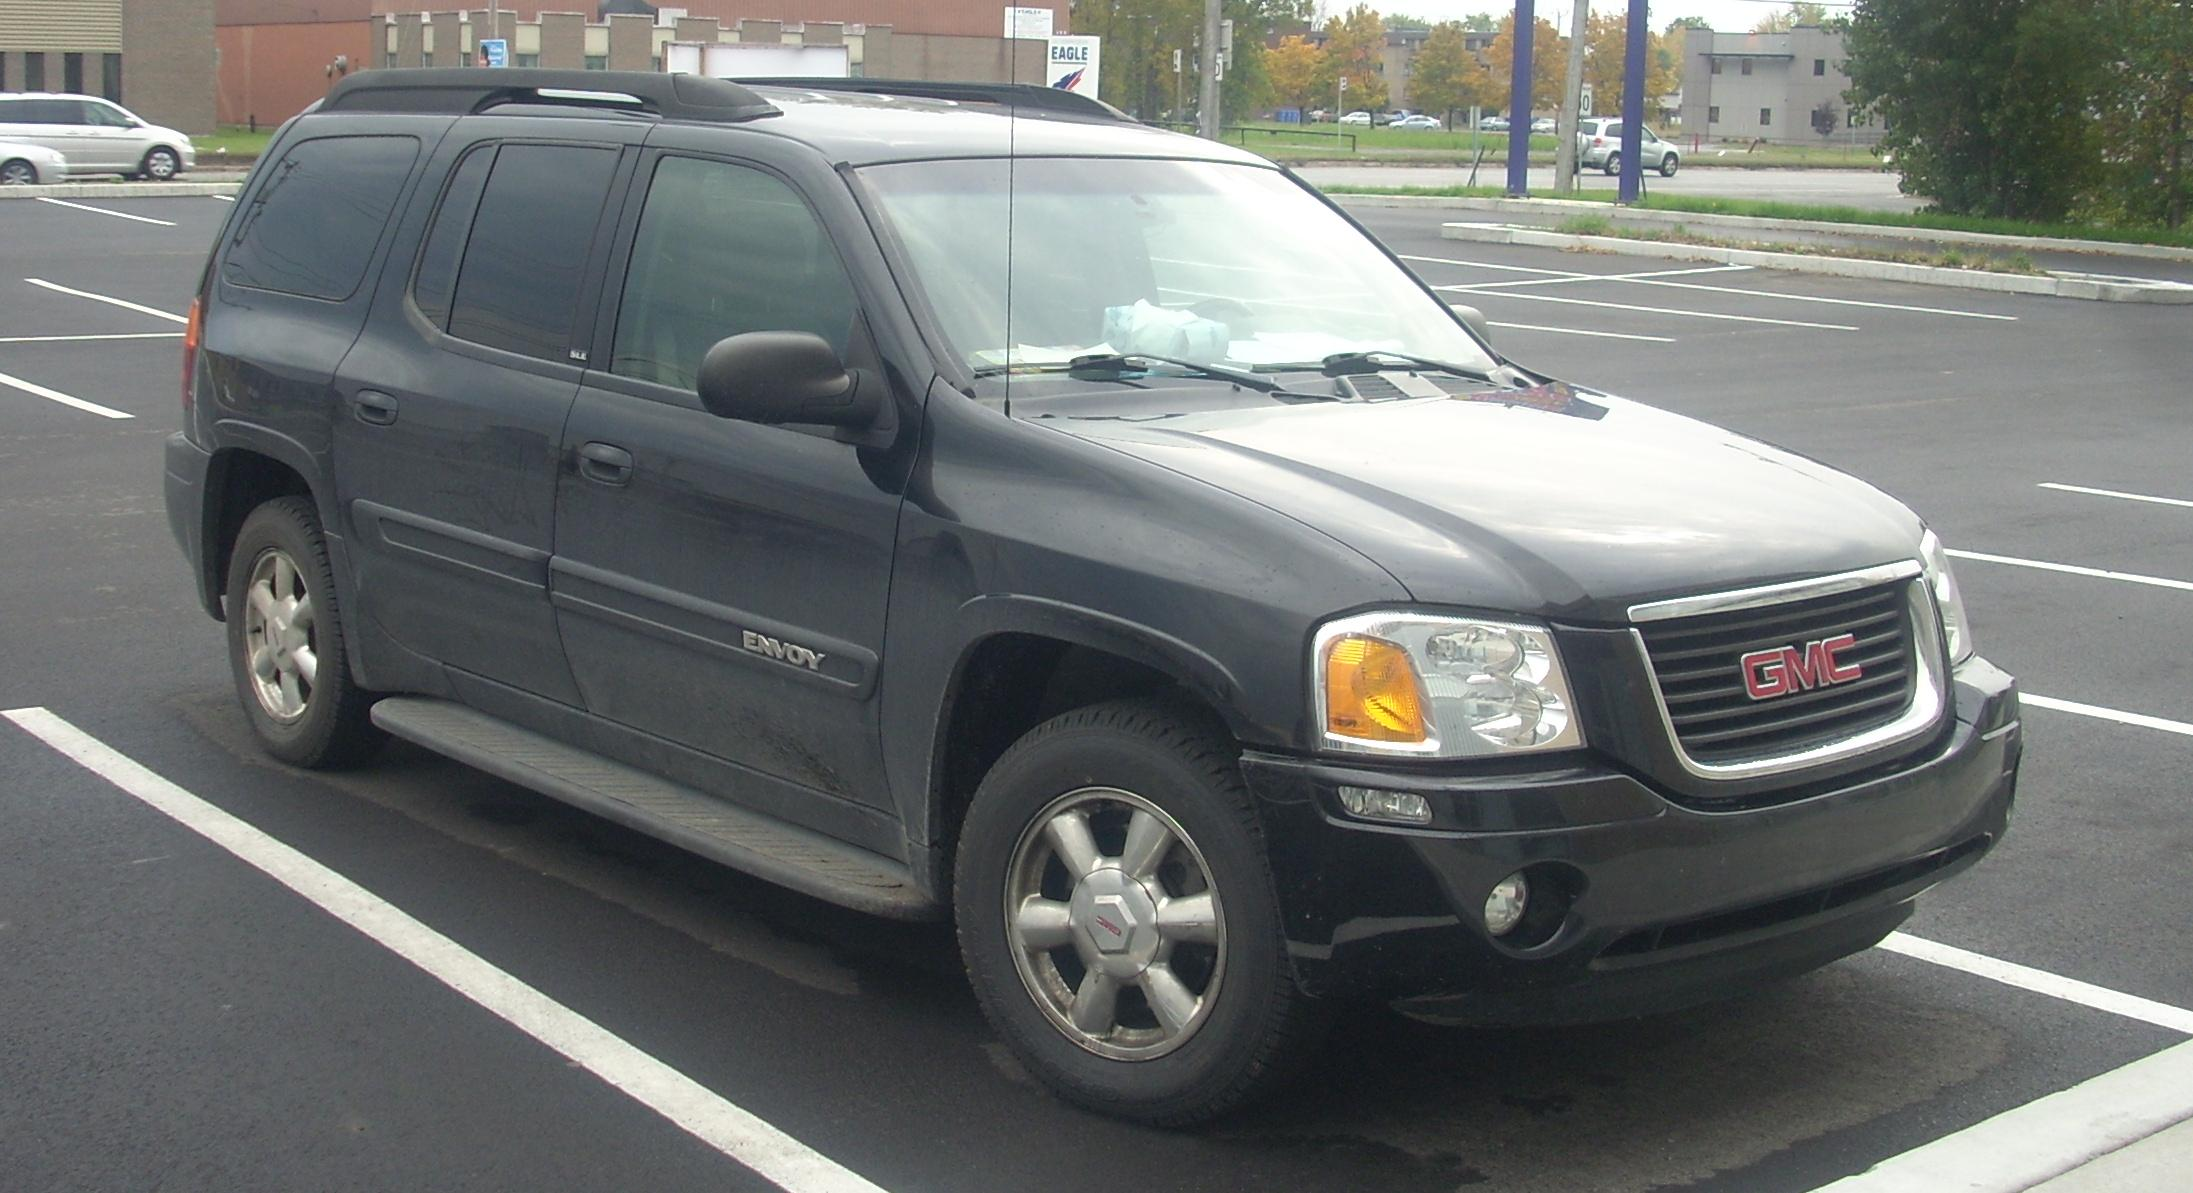 3143 2005 Gmc Envoy Xuv 7 likewise Watch additionally 2002 Gmc Envoy Slt likewise Photos furthermore Watch. on gmc envoy